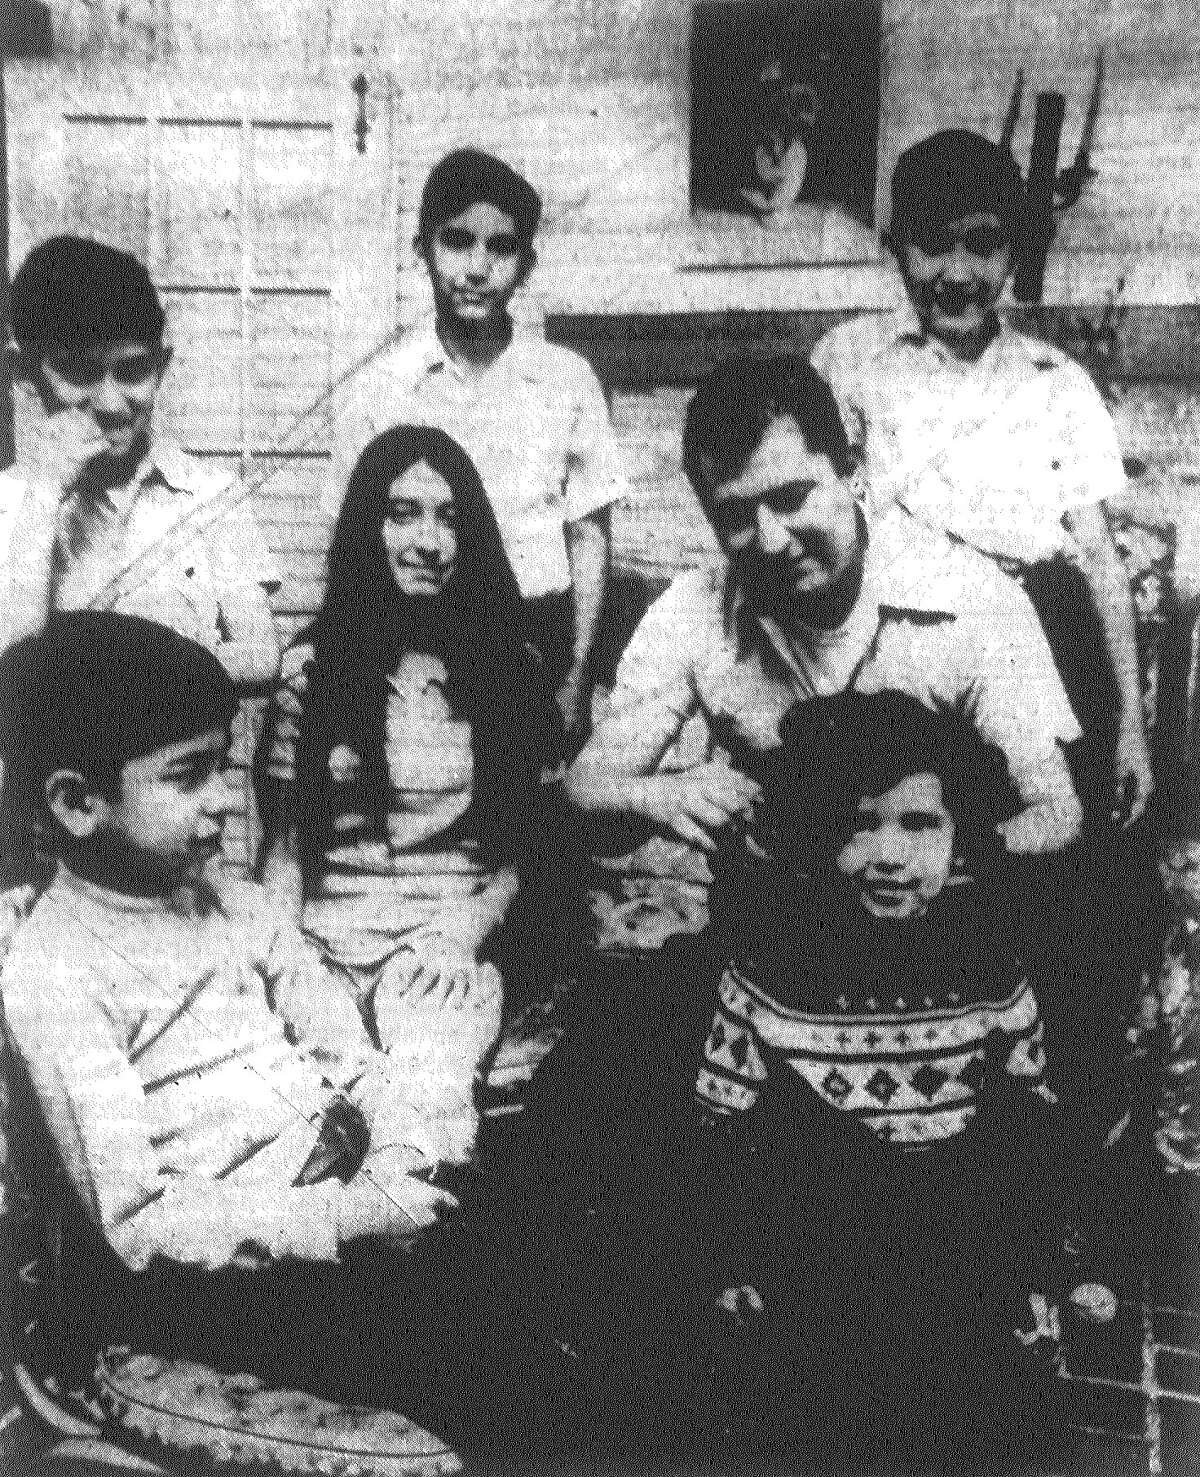 Michael Chapa Jr., a lieutenant inspector with the San Antonio Fire Department, combs daughter Leticia's hair, under the watchful eyes of his children Raul (foreground), Cynthia (next to Chapa), Frank (rear, from left), Gabriel and Michael. Chapa's wife, Virginia, died Dec. 21 in childbirth with the couple's seventh child. Christmas